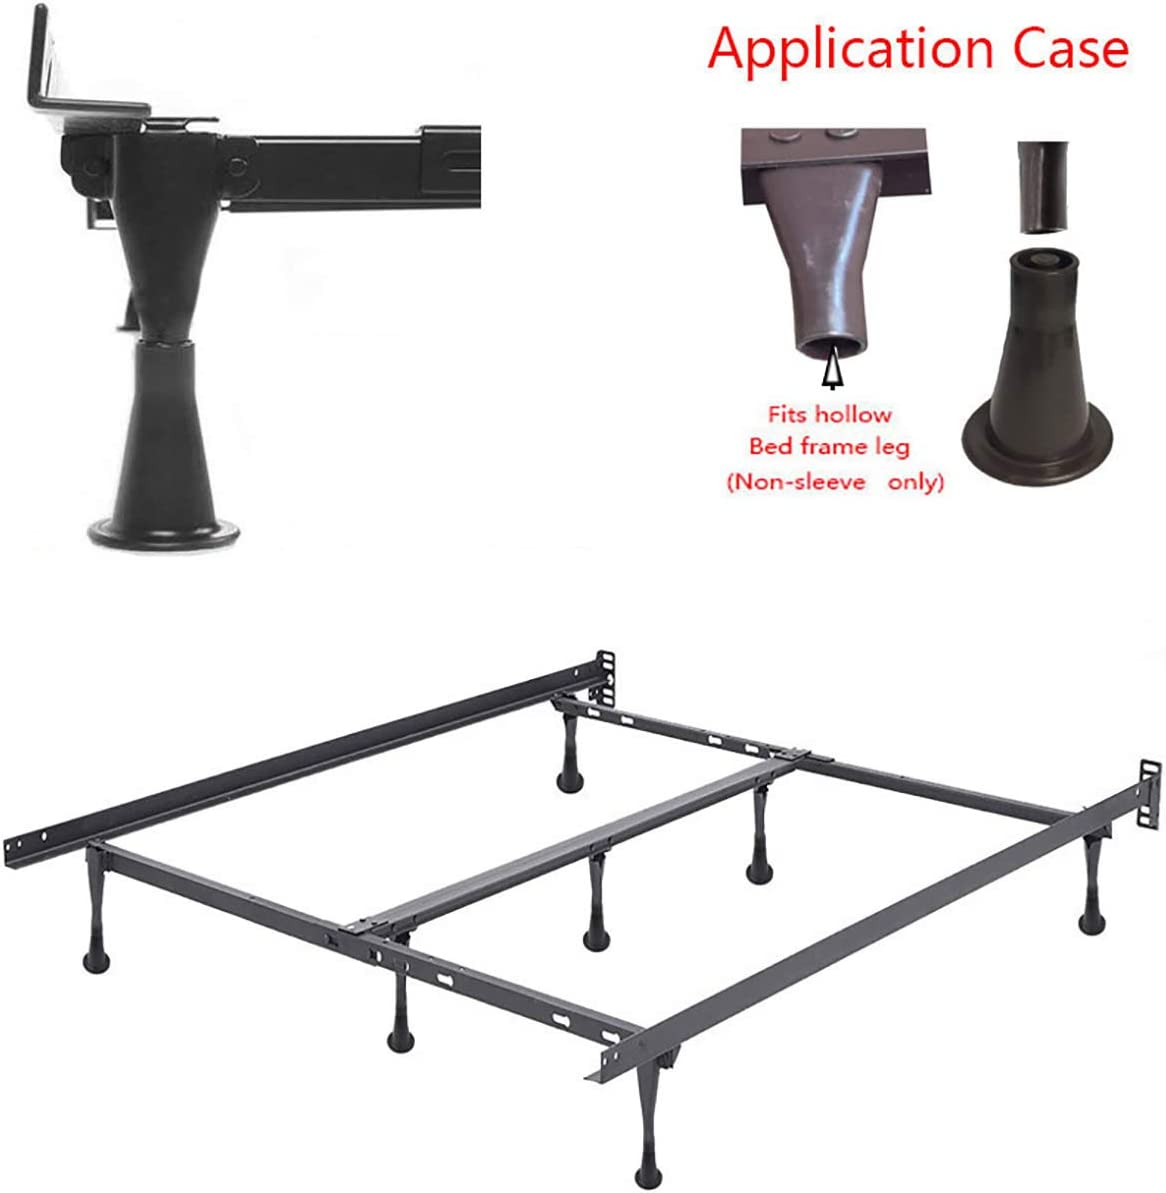 Set of 4 CAFORO Bed Frame Feet That Replace Your Wheels Replacement Feet Allow Your Bed to Be Stationary Without Damaging Your Floor